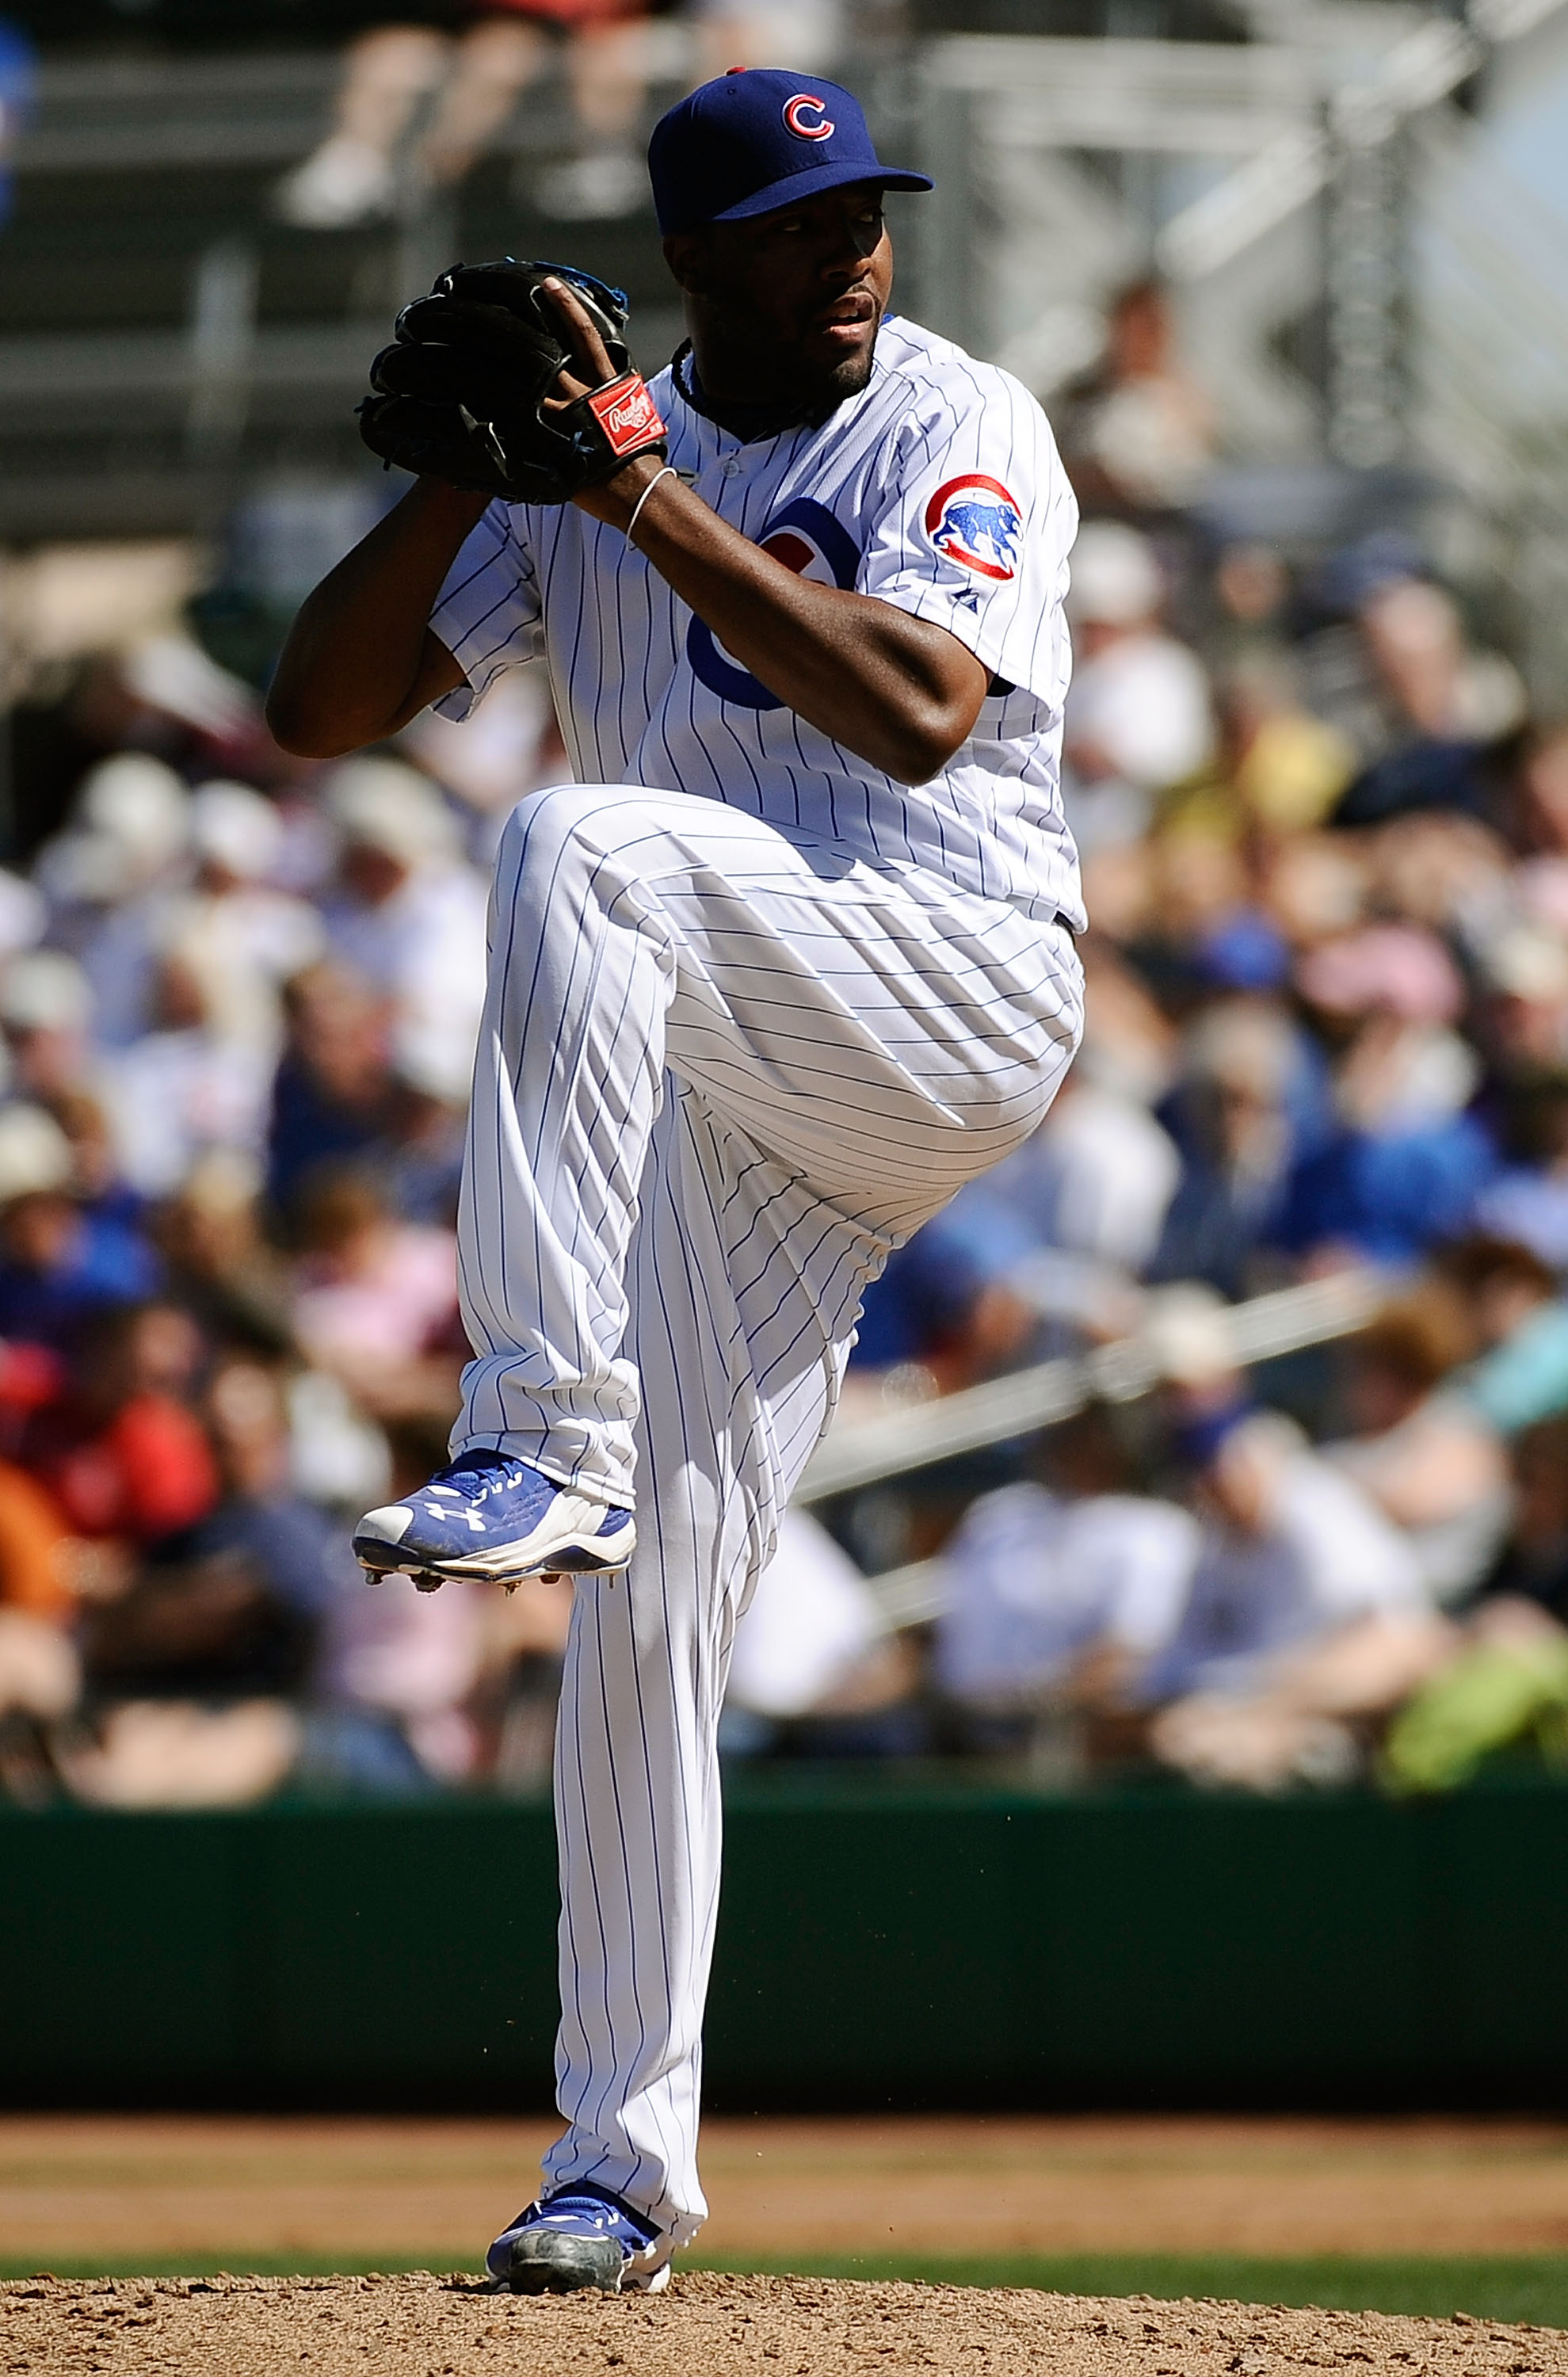 MESA, AZ - MARCH 09:  Jay Jackson #65 of the Chicago Cubs throws a pitch against the Kansas City Royals during the spring training baseball game at HoHoKam Stadium on March 9, 2011 in Mesa, Arizona.  (Photo by Kevork Djansezian/Getty Images)